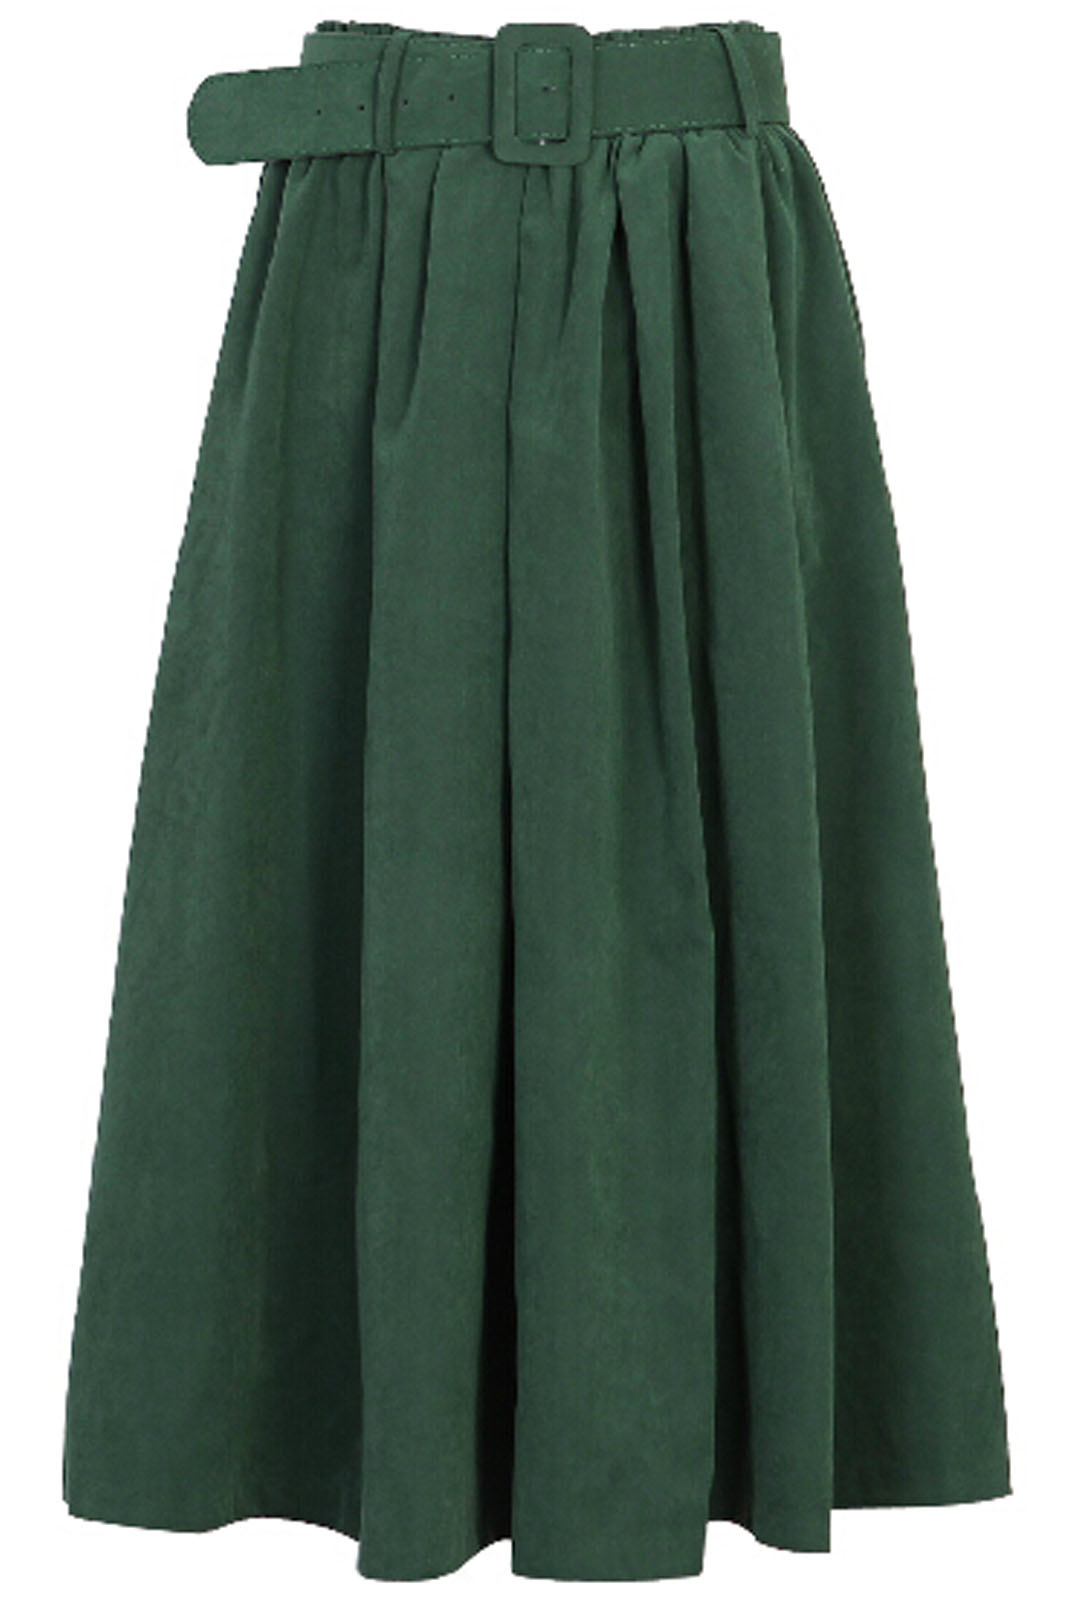 ROMWE | Pleated Belted Dark Green Skirt, The Latest Street Fashion